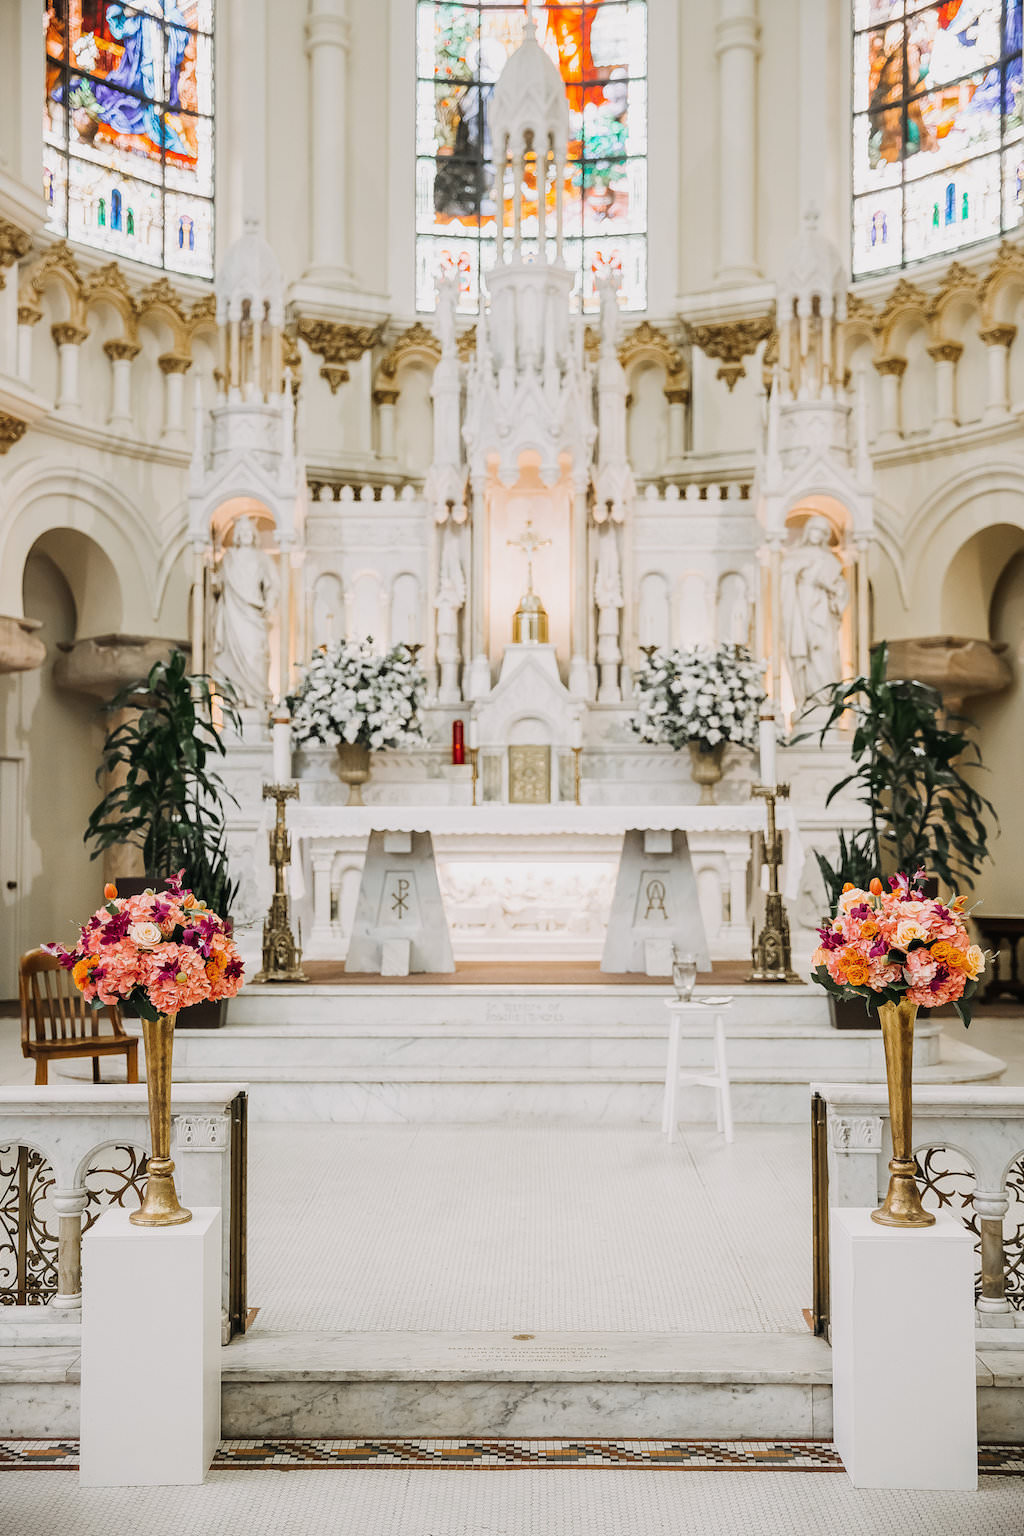 Traditional Church Wedding Ceremony with Tall Tropical Bright Peach and Pink Flowers in Gold Vases   Tampa Ceremony Venue Sacred Heart Catholic Church